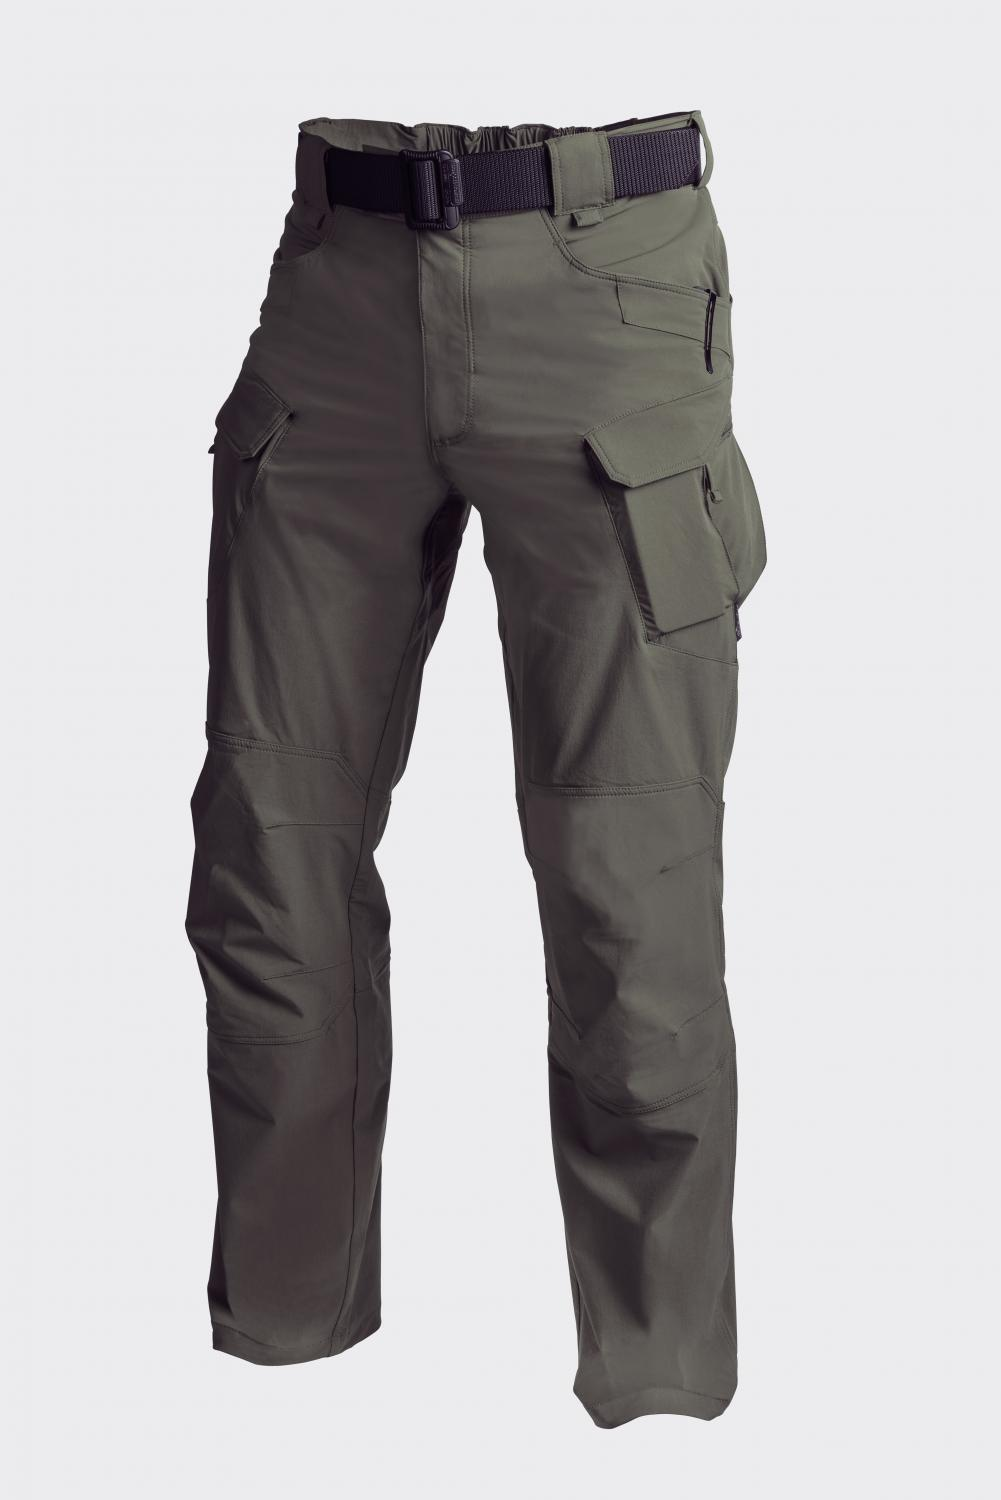 OUTDOOR TACTICAL PANTS - Nylon Taiga Green